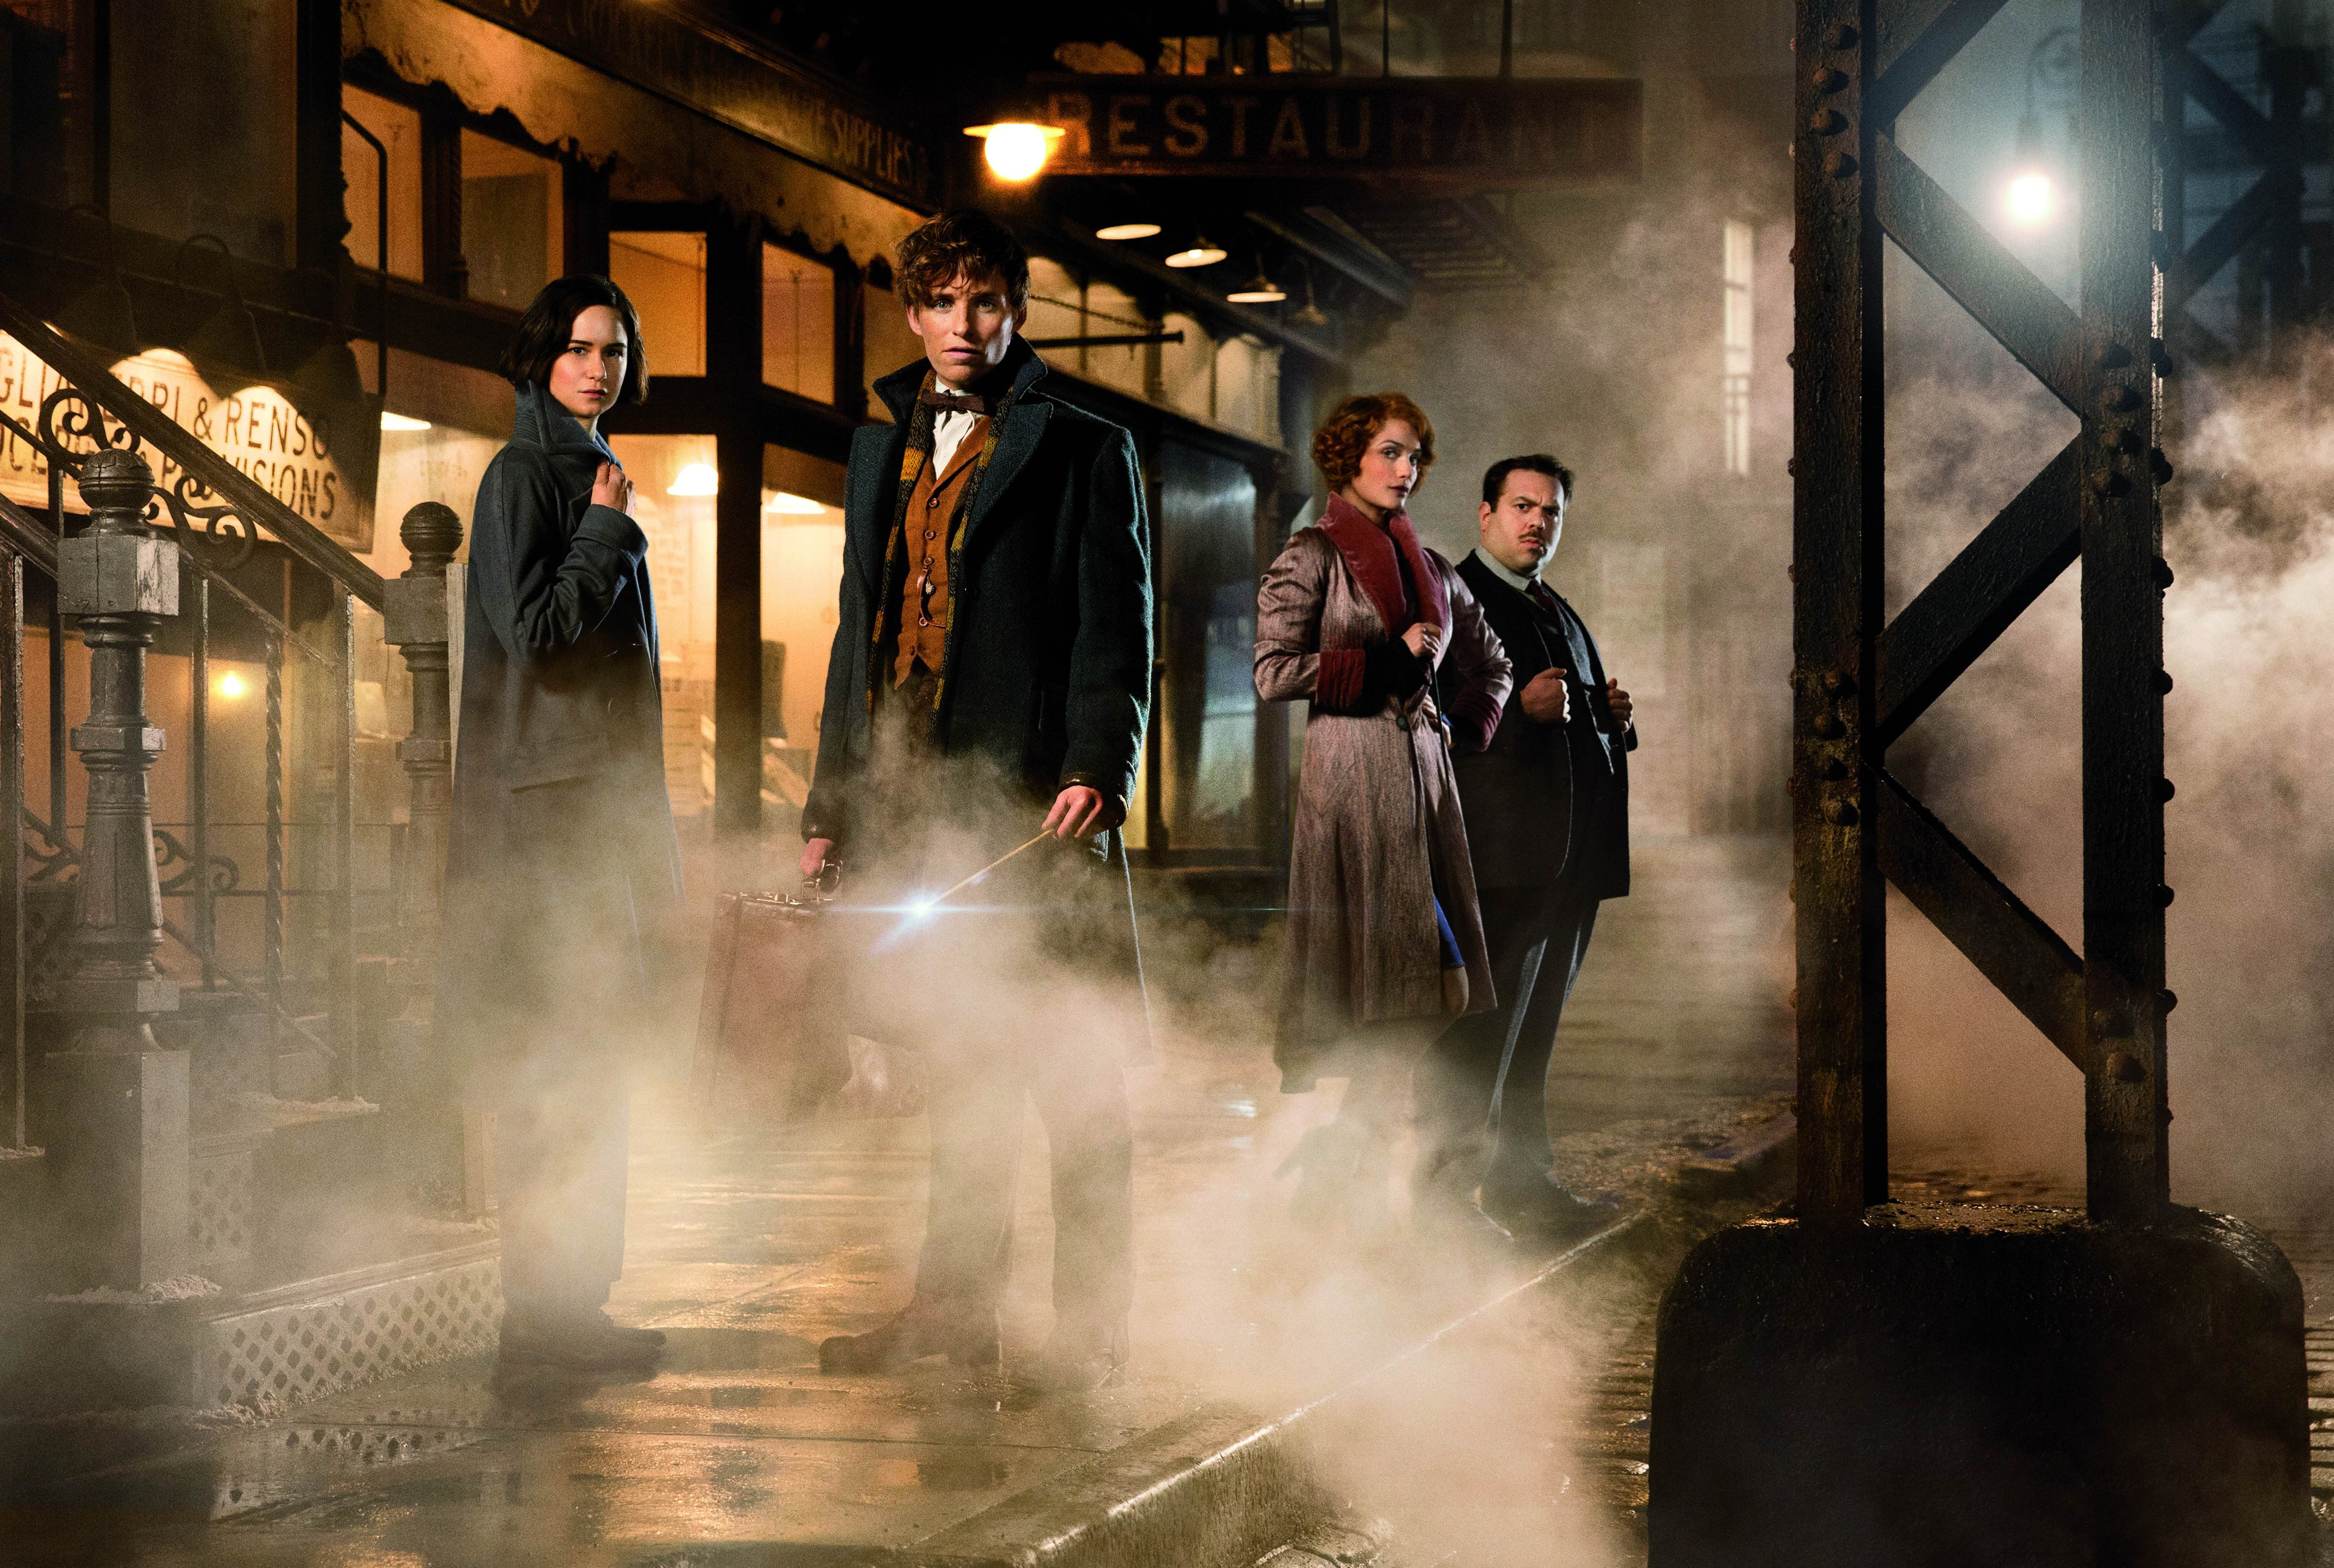 Katherine Waterston as Tina, Eddie Redmayne as Newt Scamander, AIison Sudol as Queenie and Dan Fogler as Jacob in Warner Bros. Pictures' fantasy adventure  Fantastic Beasts and Where to Find Them.